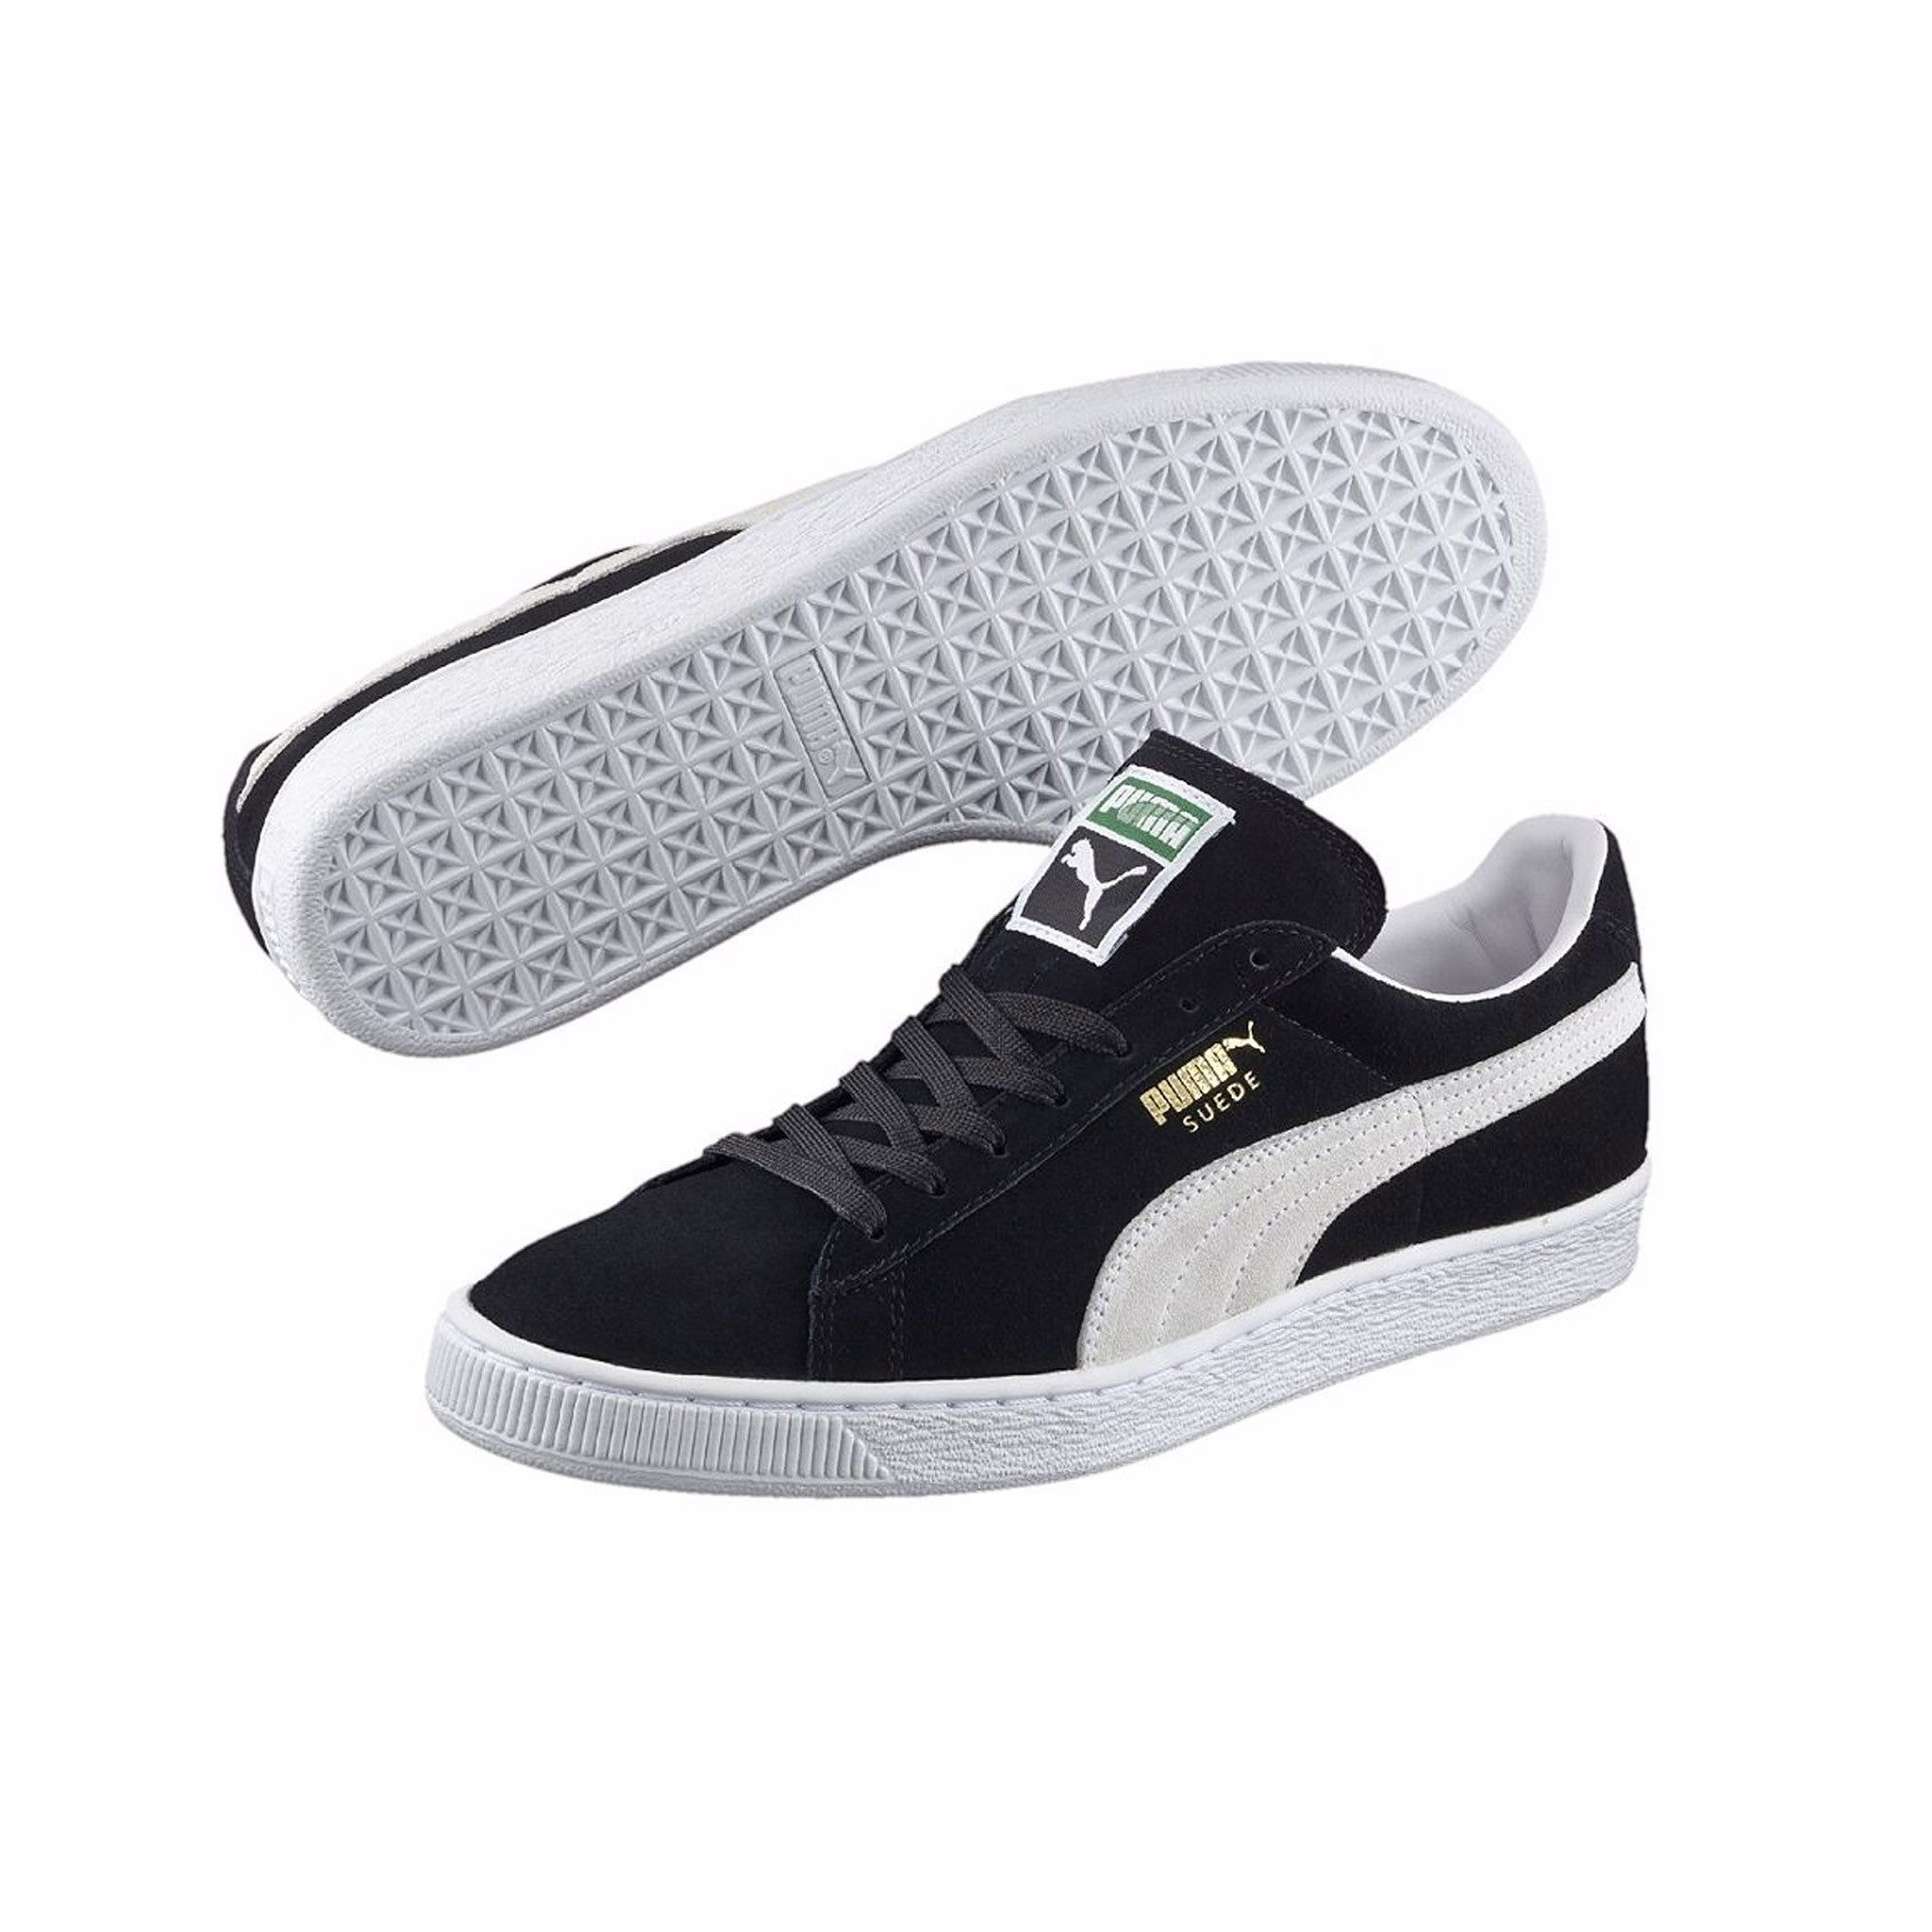 Suede Classic Puma Sneakers Black Pair View